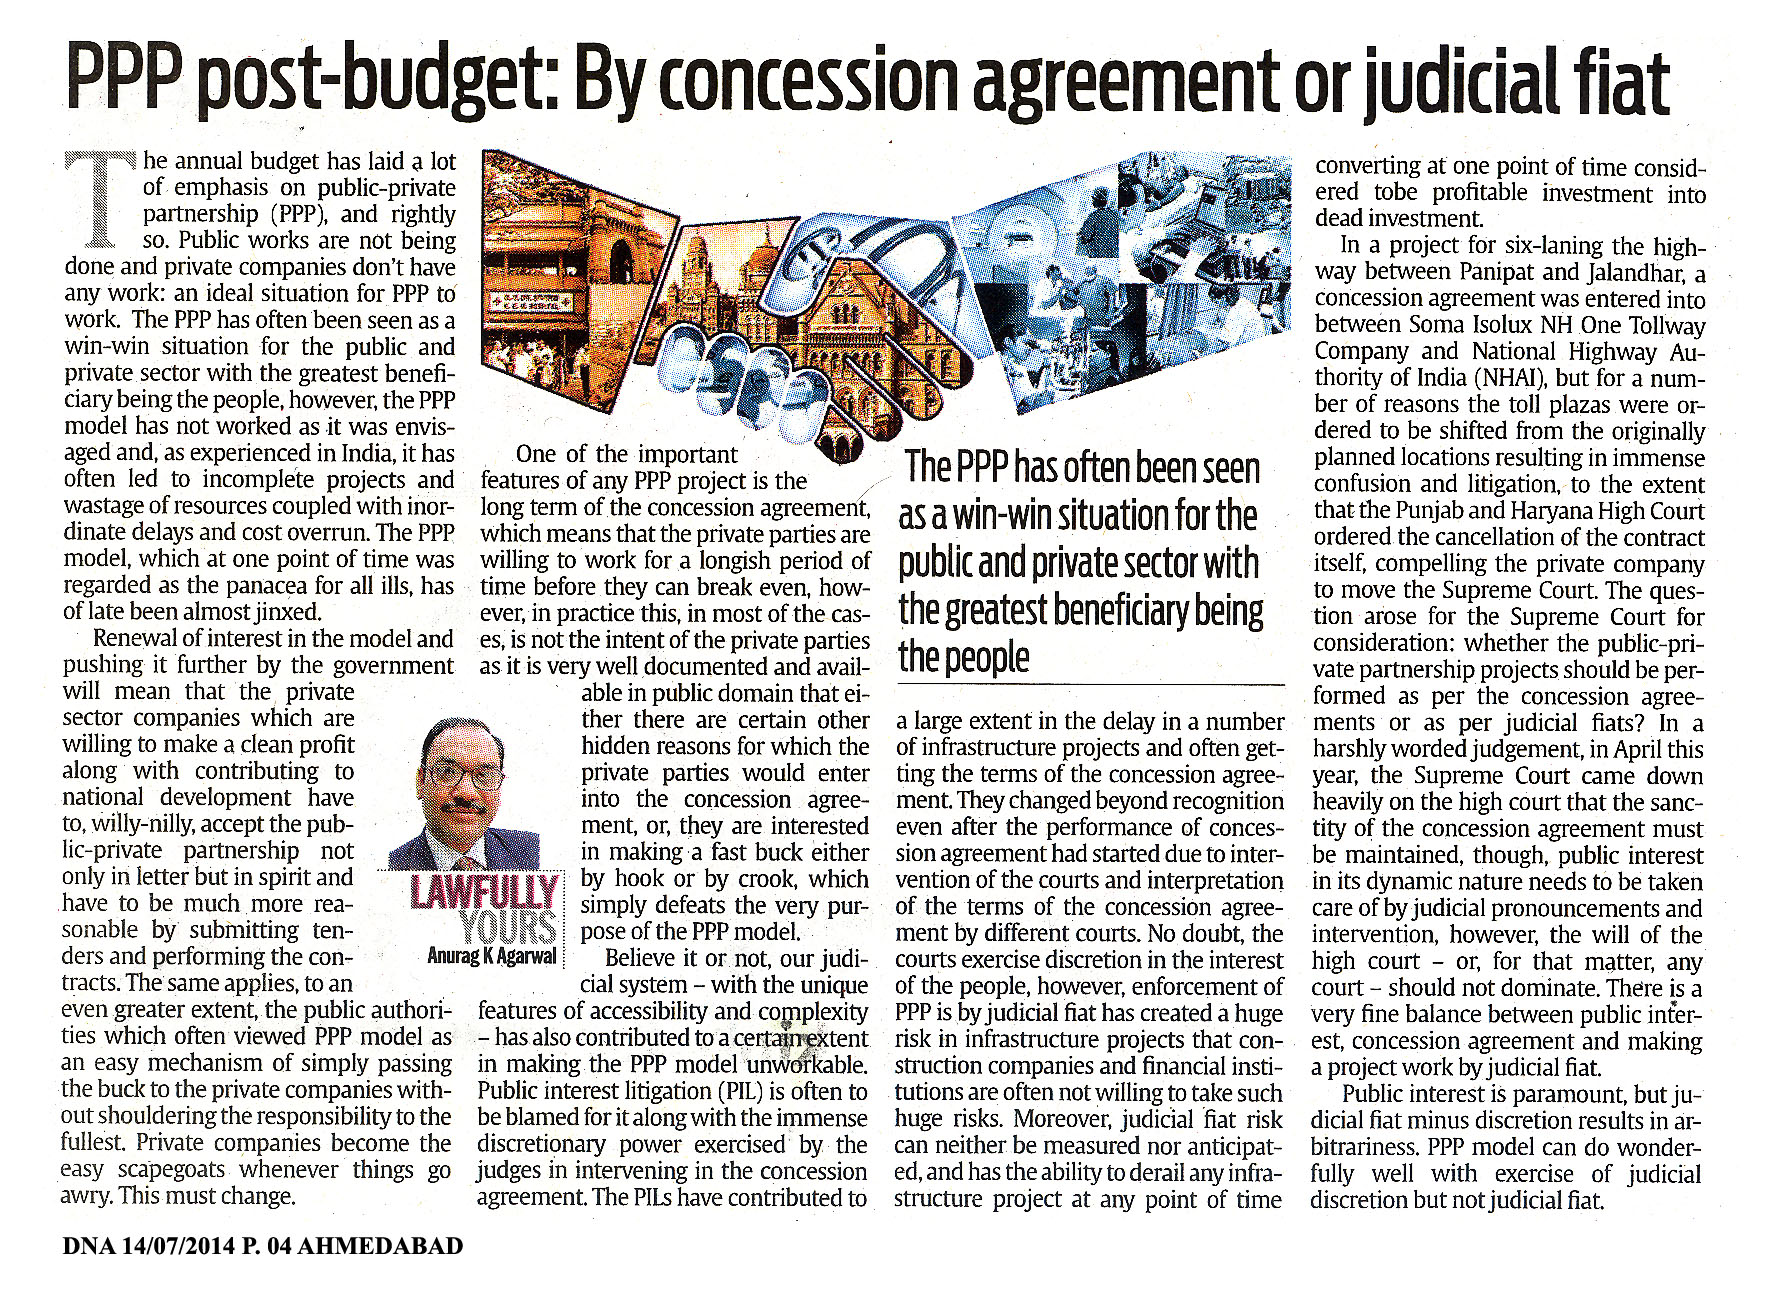 Ppp Post Budget By Concession Agreement Or Judicial Fiat